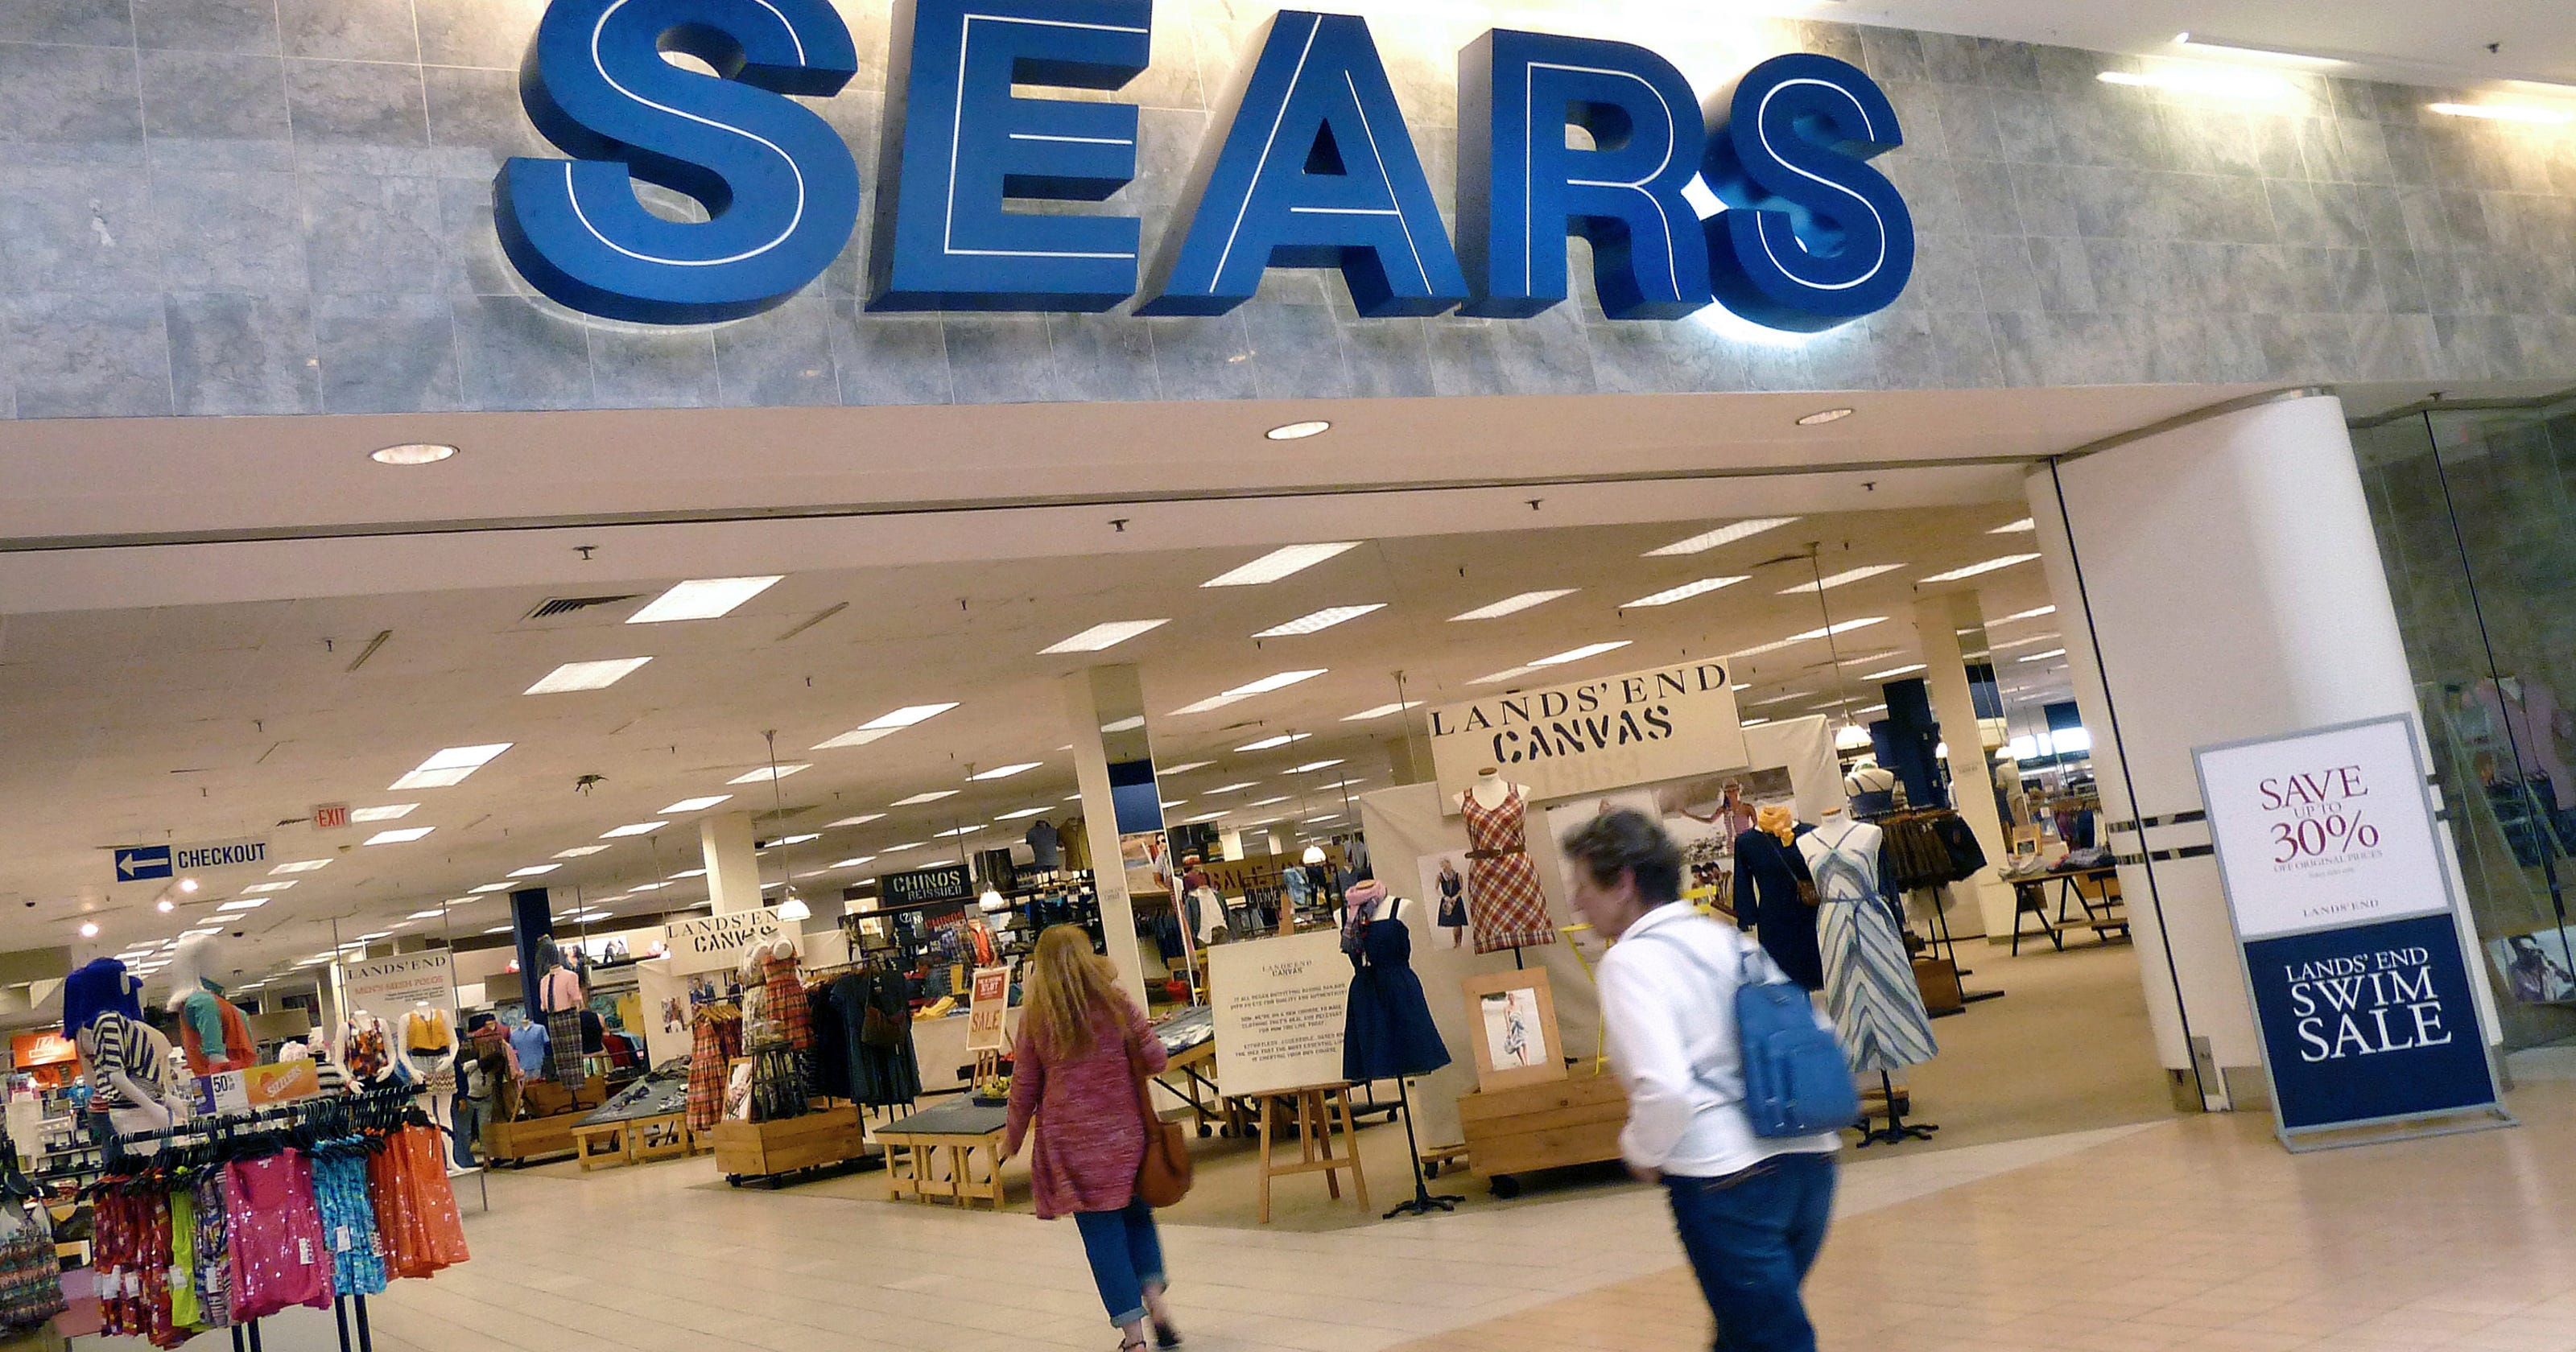 Are malls secretly hoping Sears goes bankrupt?